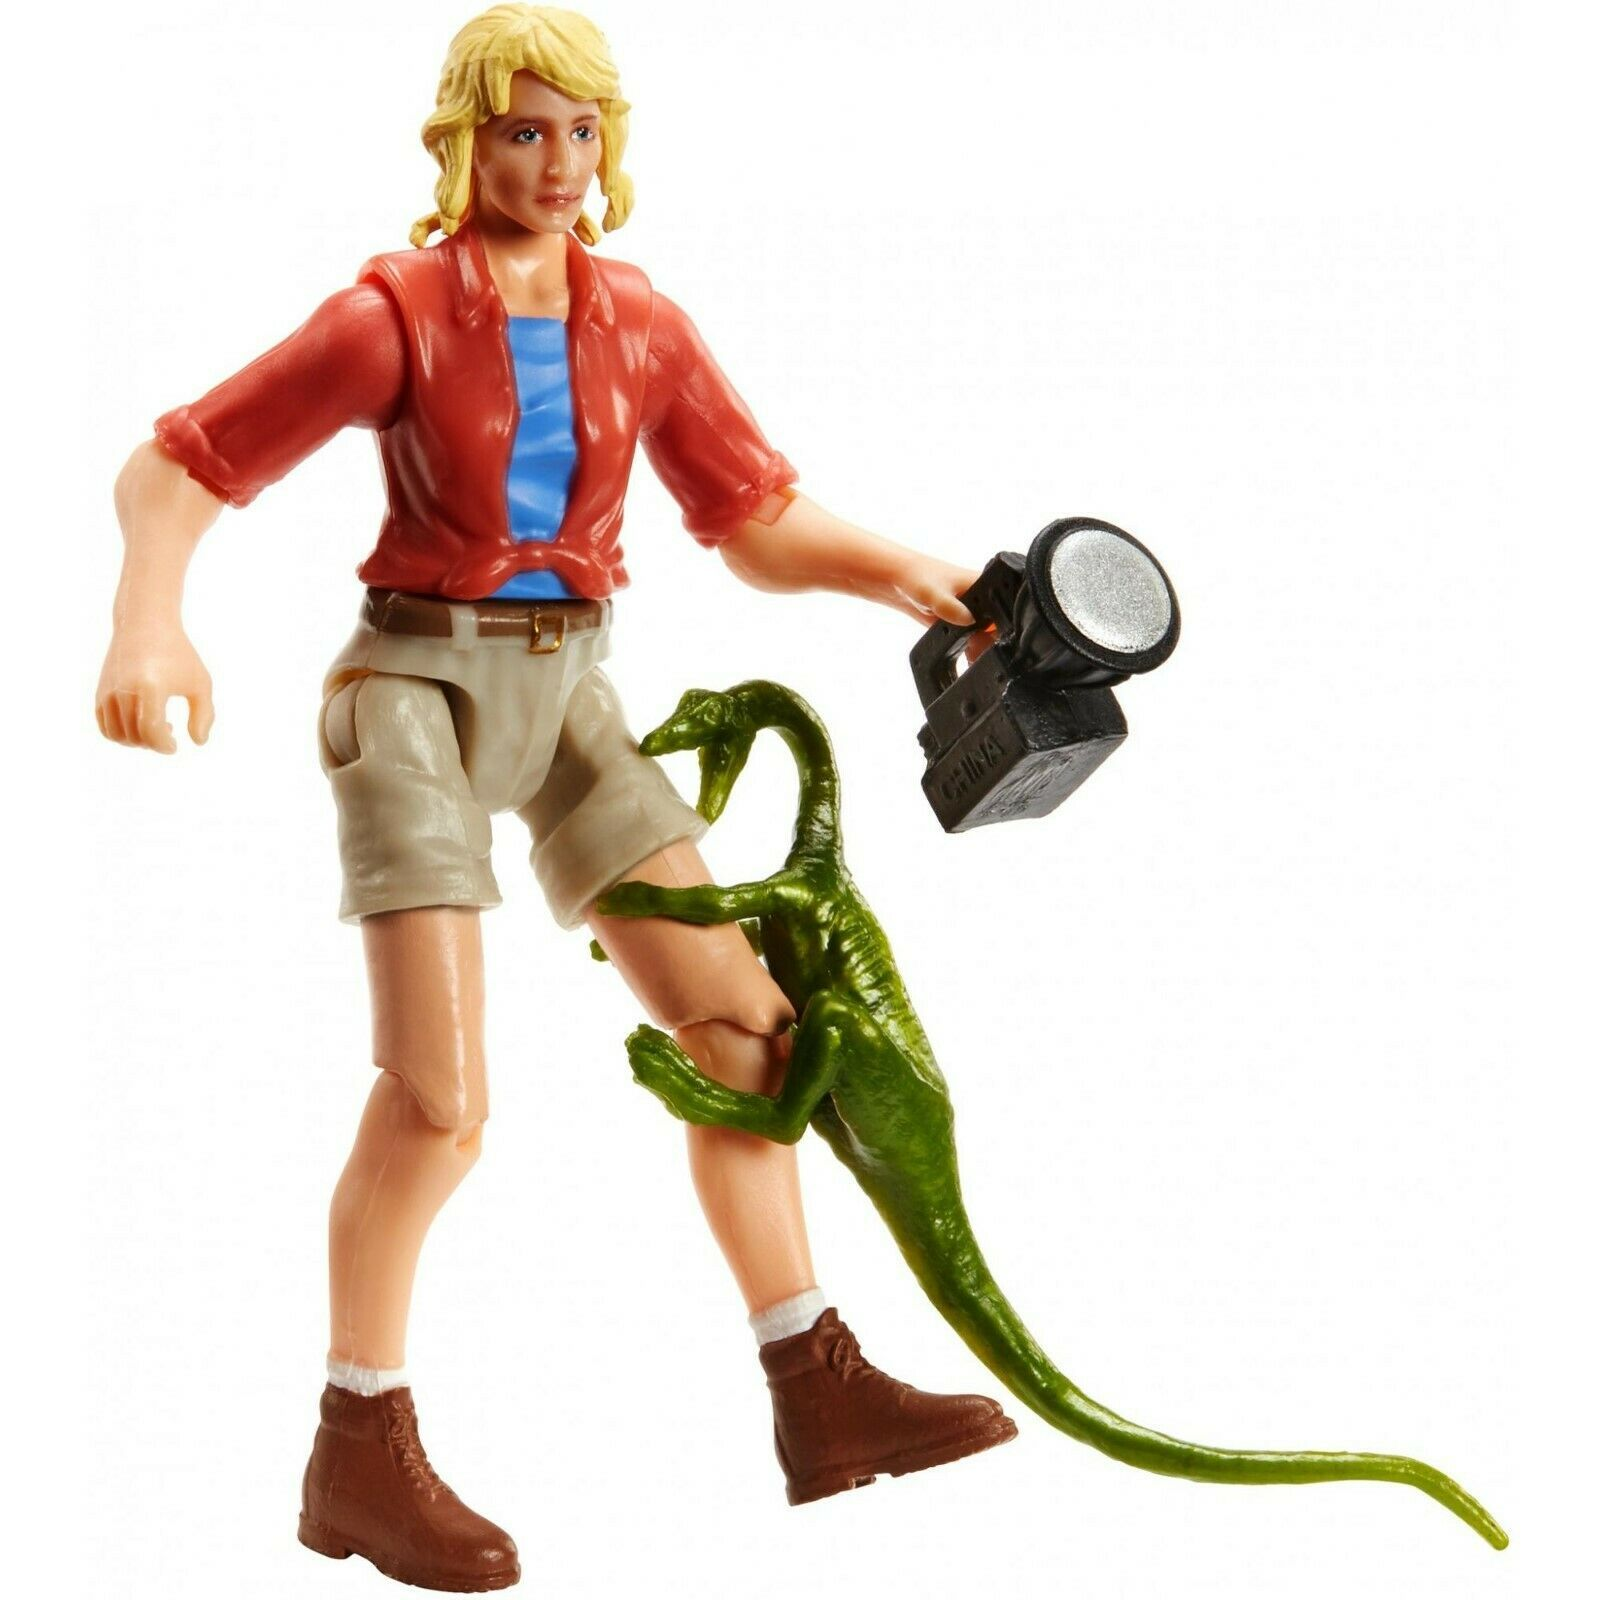 Jurassic World Dr. Ellie Sattler Figure Legacy Collection 2018 Mattel park